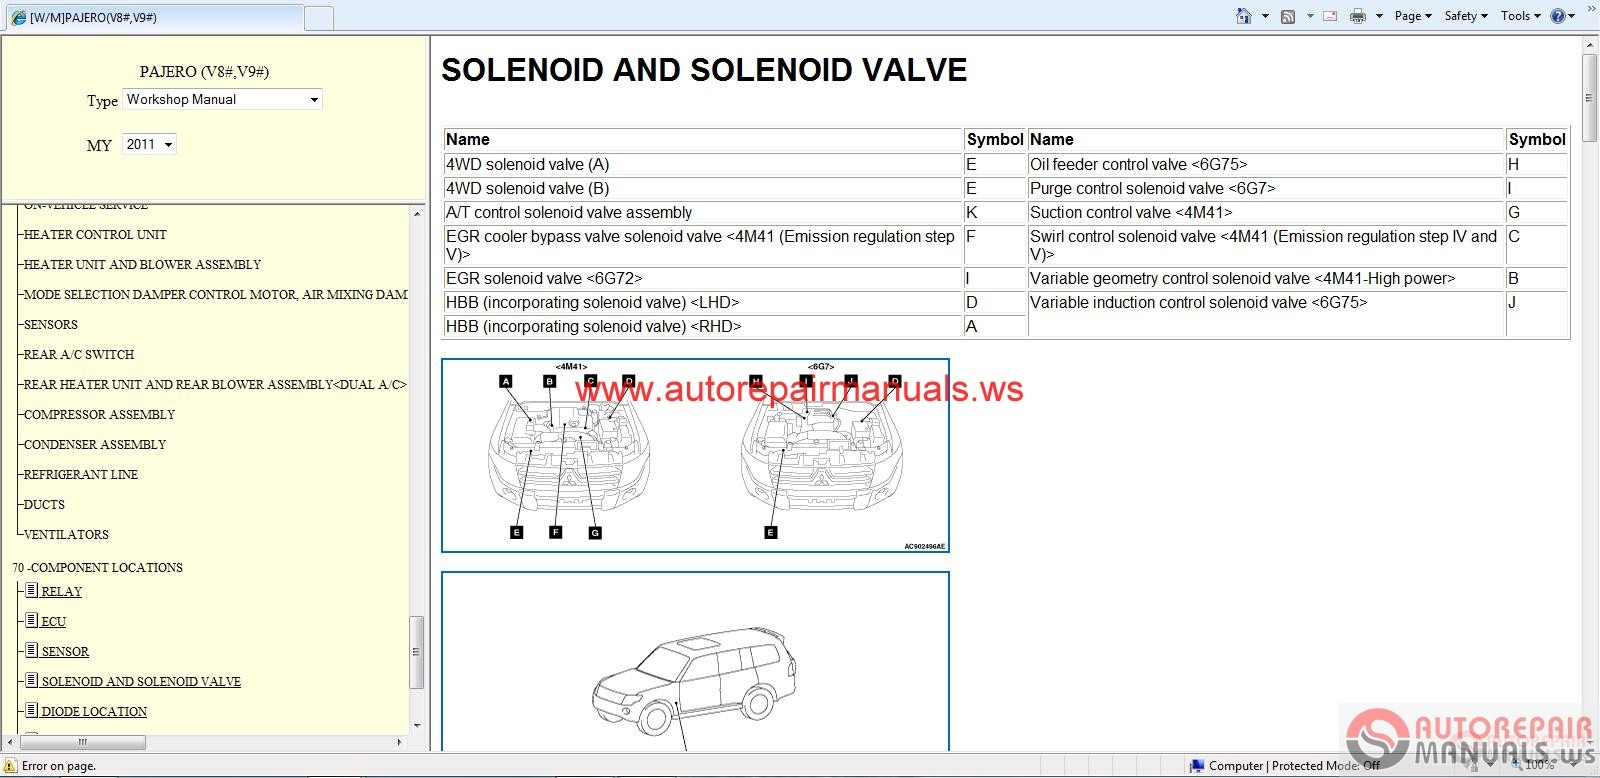 Mitsubishi Lancer 2015 And Lancer Sportback 2015 Service Manual Cd further Car Stereo Wiring Diagrams Free together with 198628390 Piaggio Typhoon 125 4t 2010 2012 further Toyota dyna 100150 service manual in addition 271318537 Yamaha Xt600 1983 2003 Factory Service Repair Manual. on chassis electrical wiring diagrams